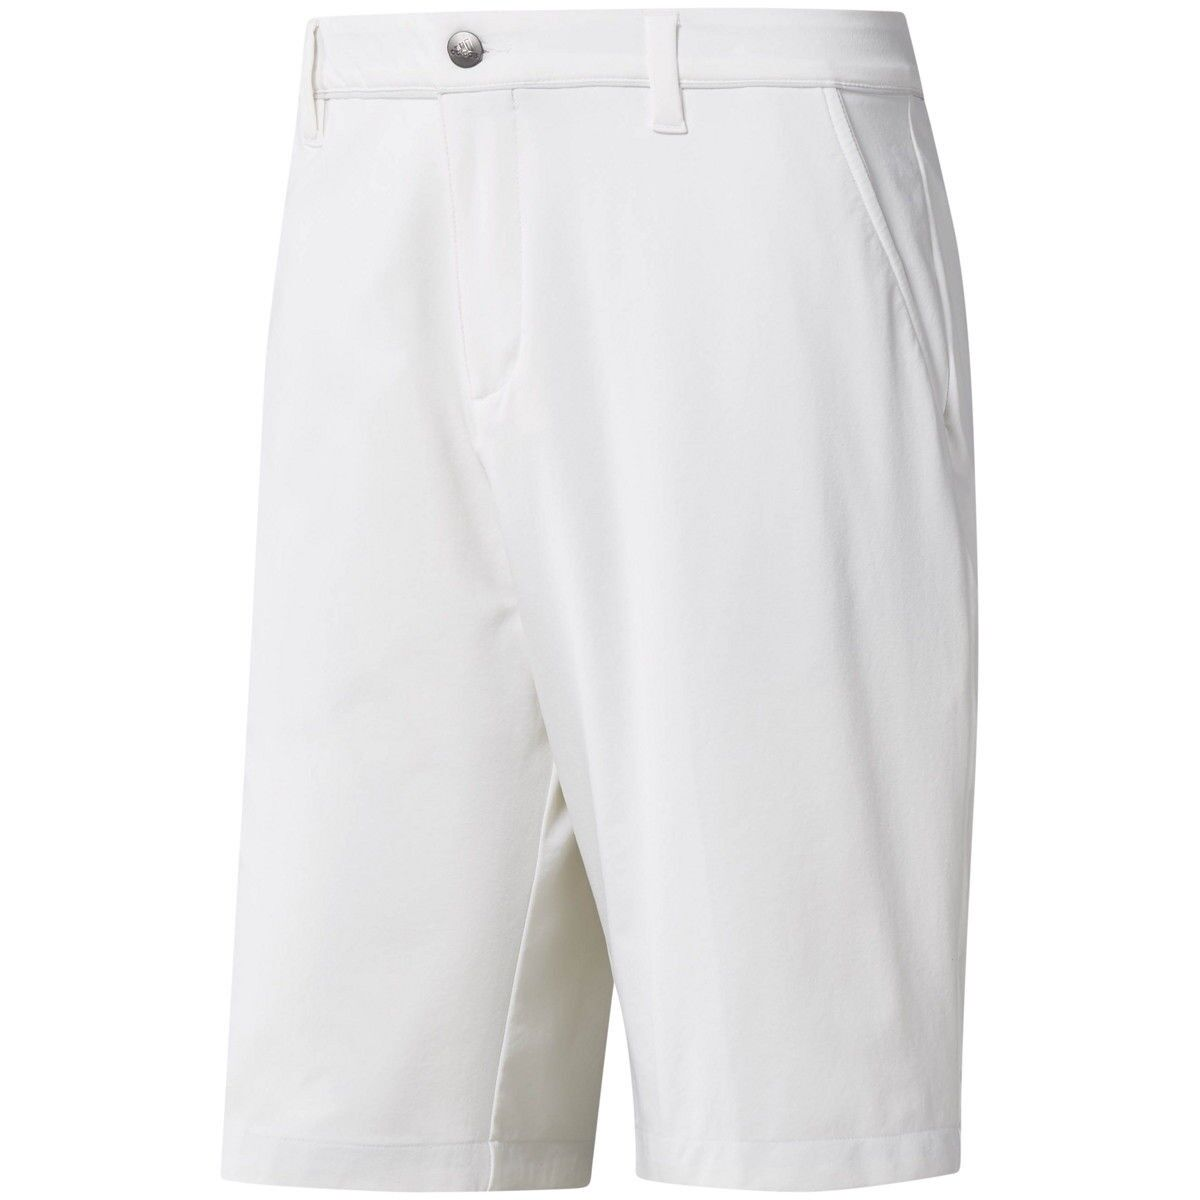 Adidas Ultimate 365 Twill Short (34) in White Grey NEW W TAG